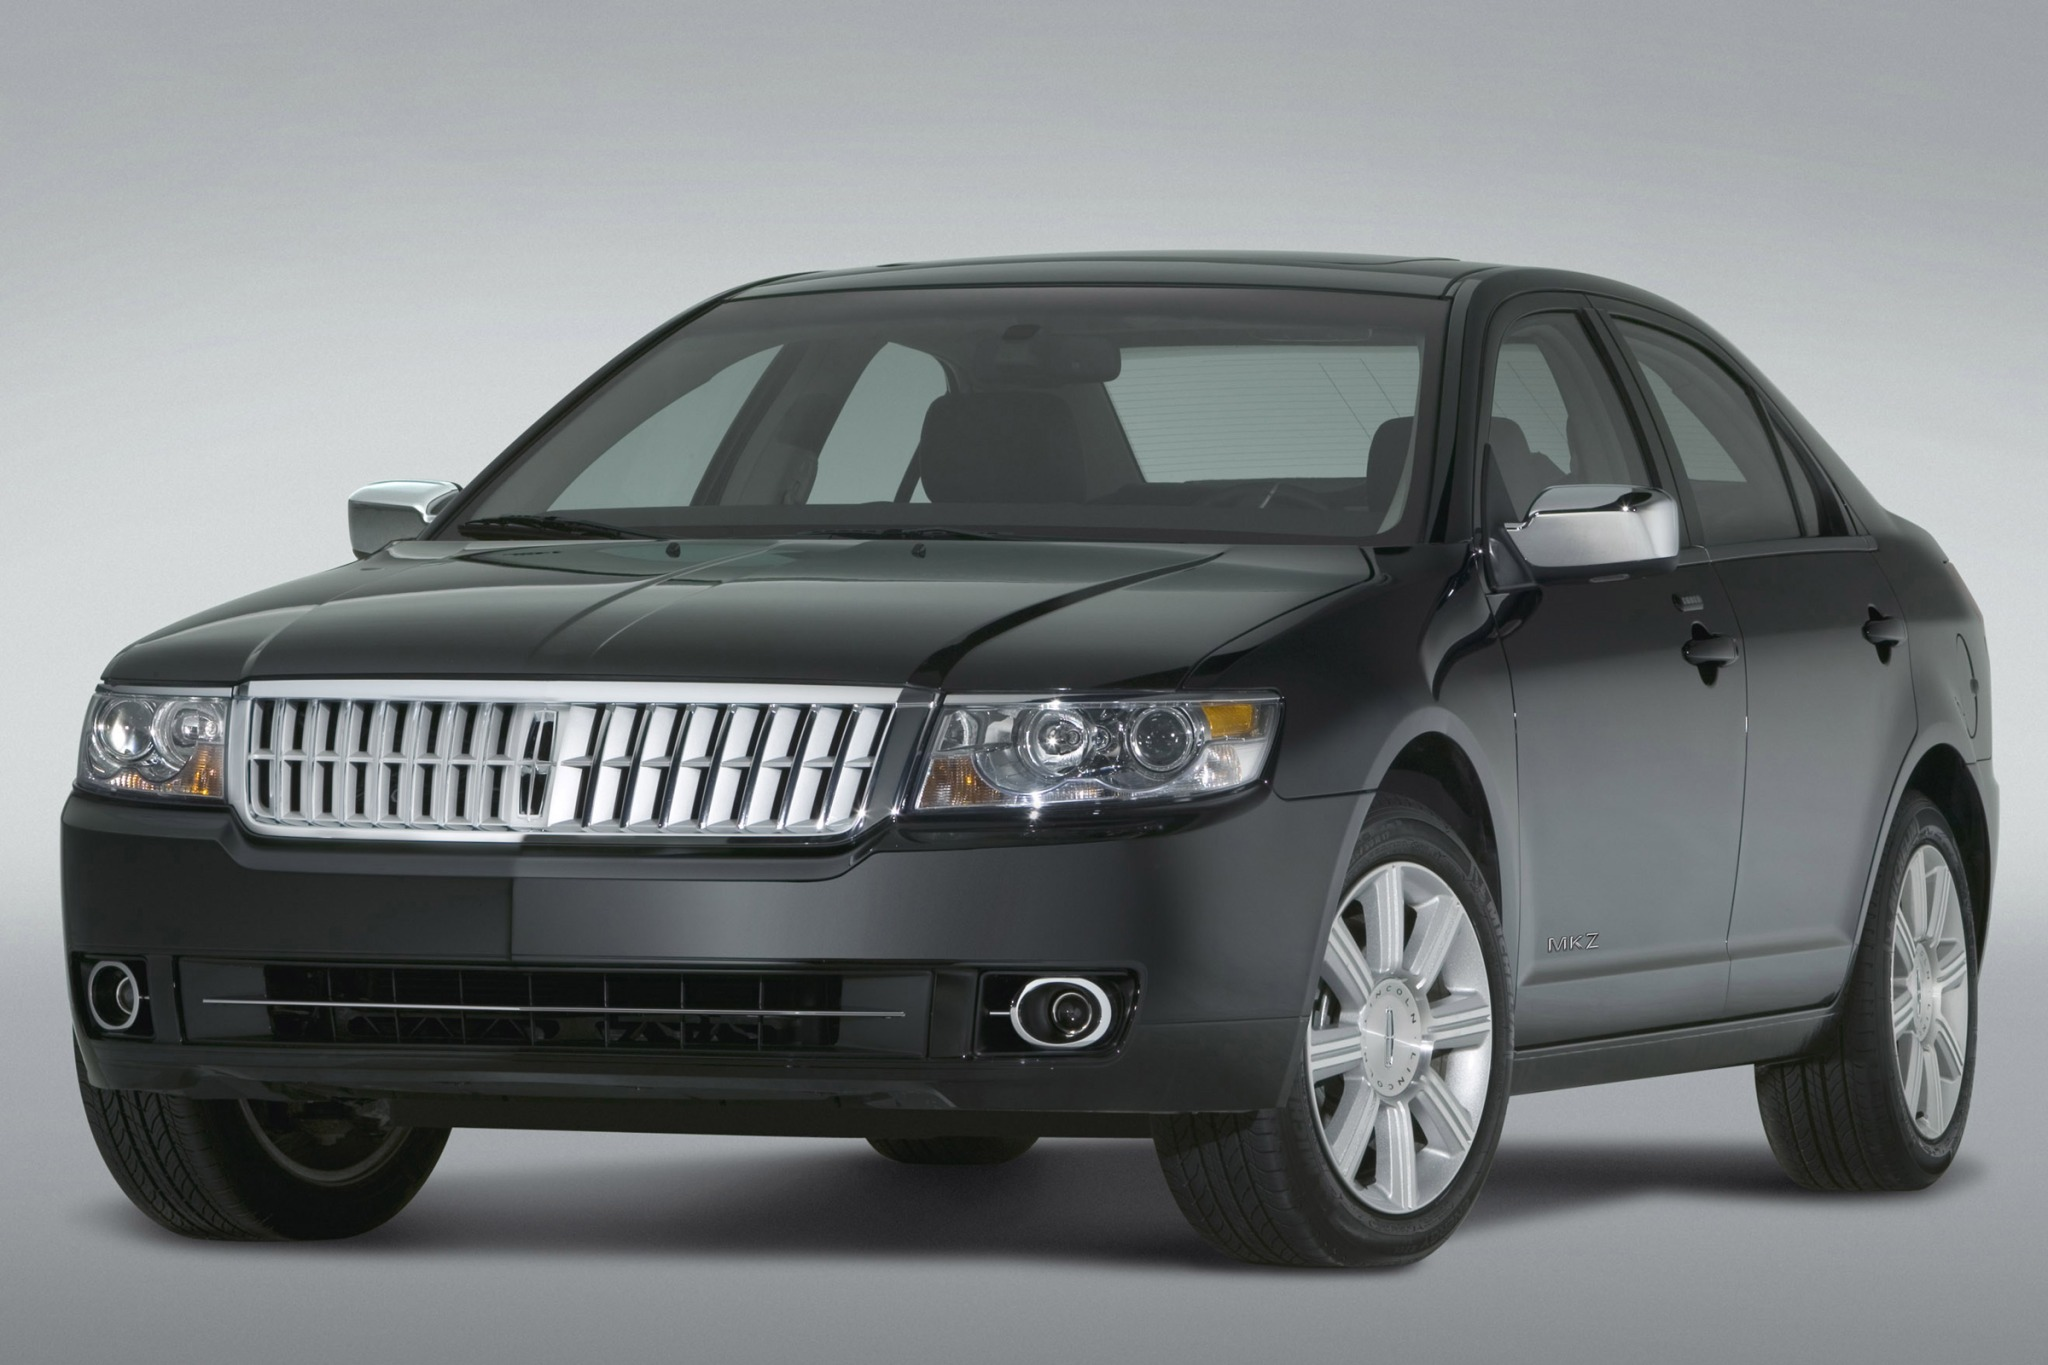 2007 lincoln mkz information and photos zombiedrive. Black Bedroom Furniture Sets. Home Design Ideas